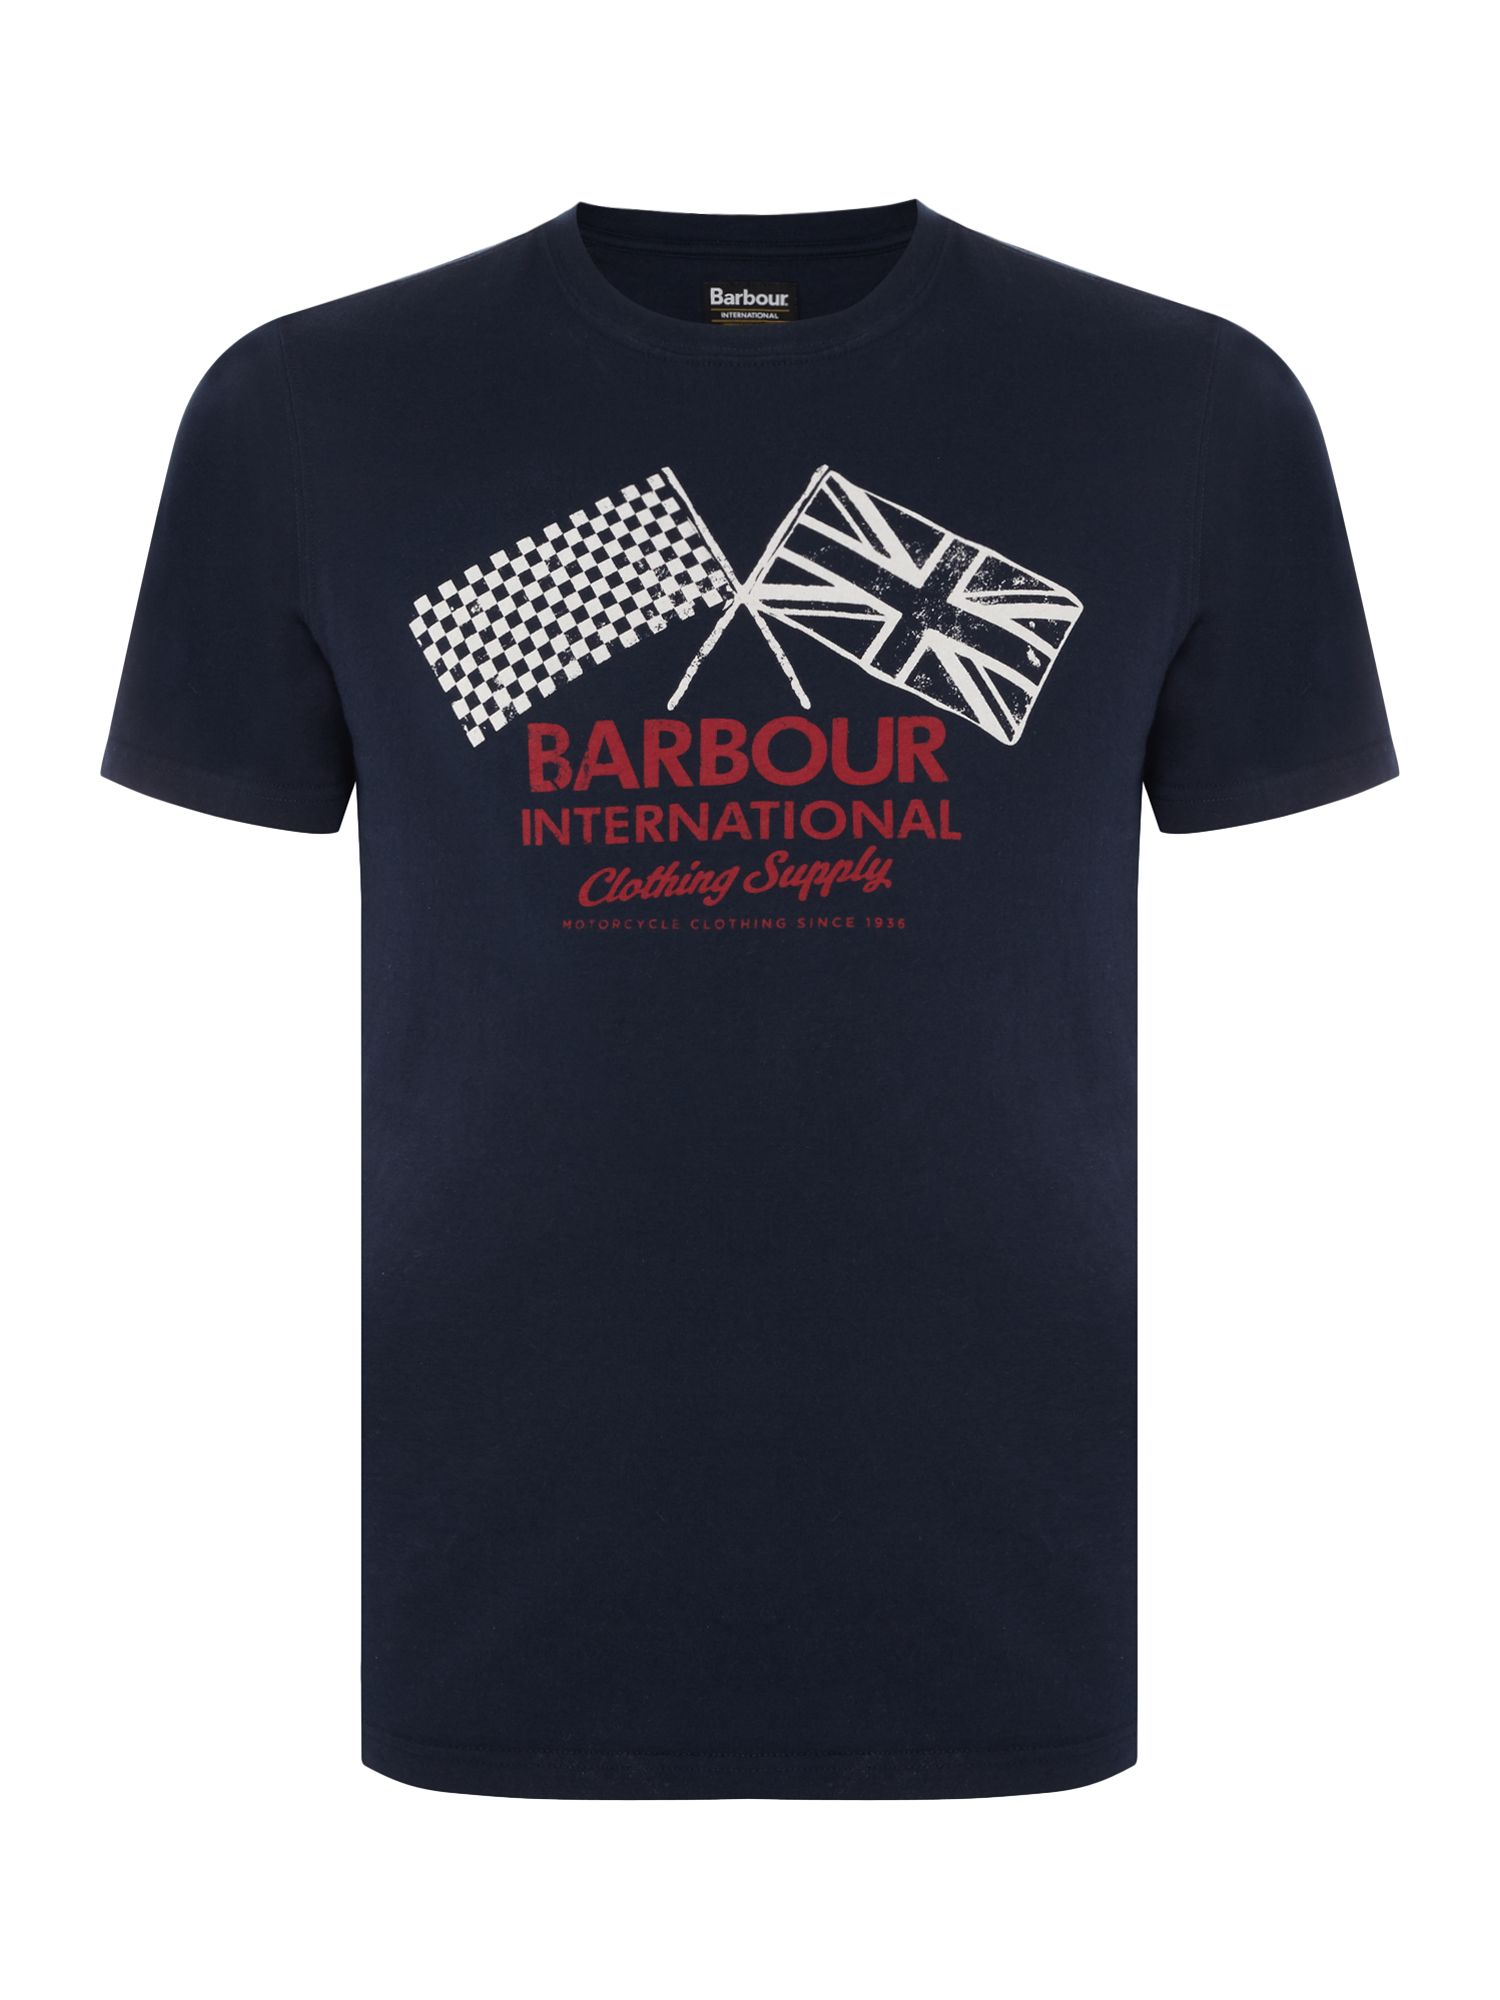 Men's Barbour Flag print short sleeve t-shirt, Blue